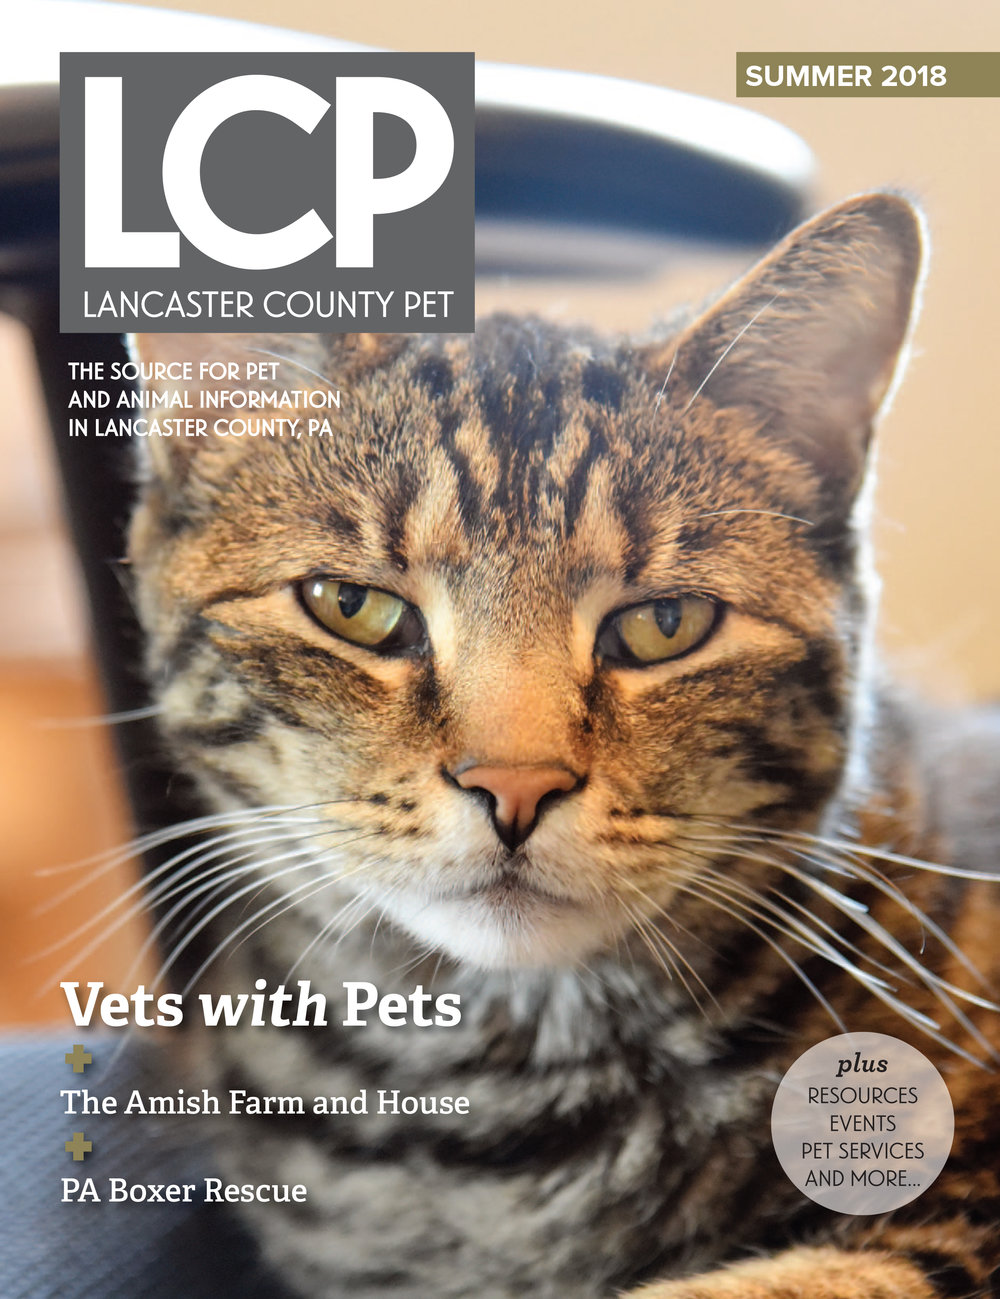 Summer 2018 Issue. Click on image to view.